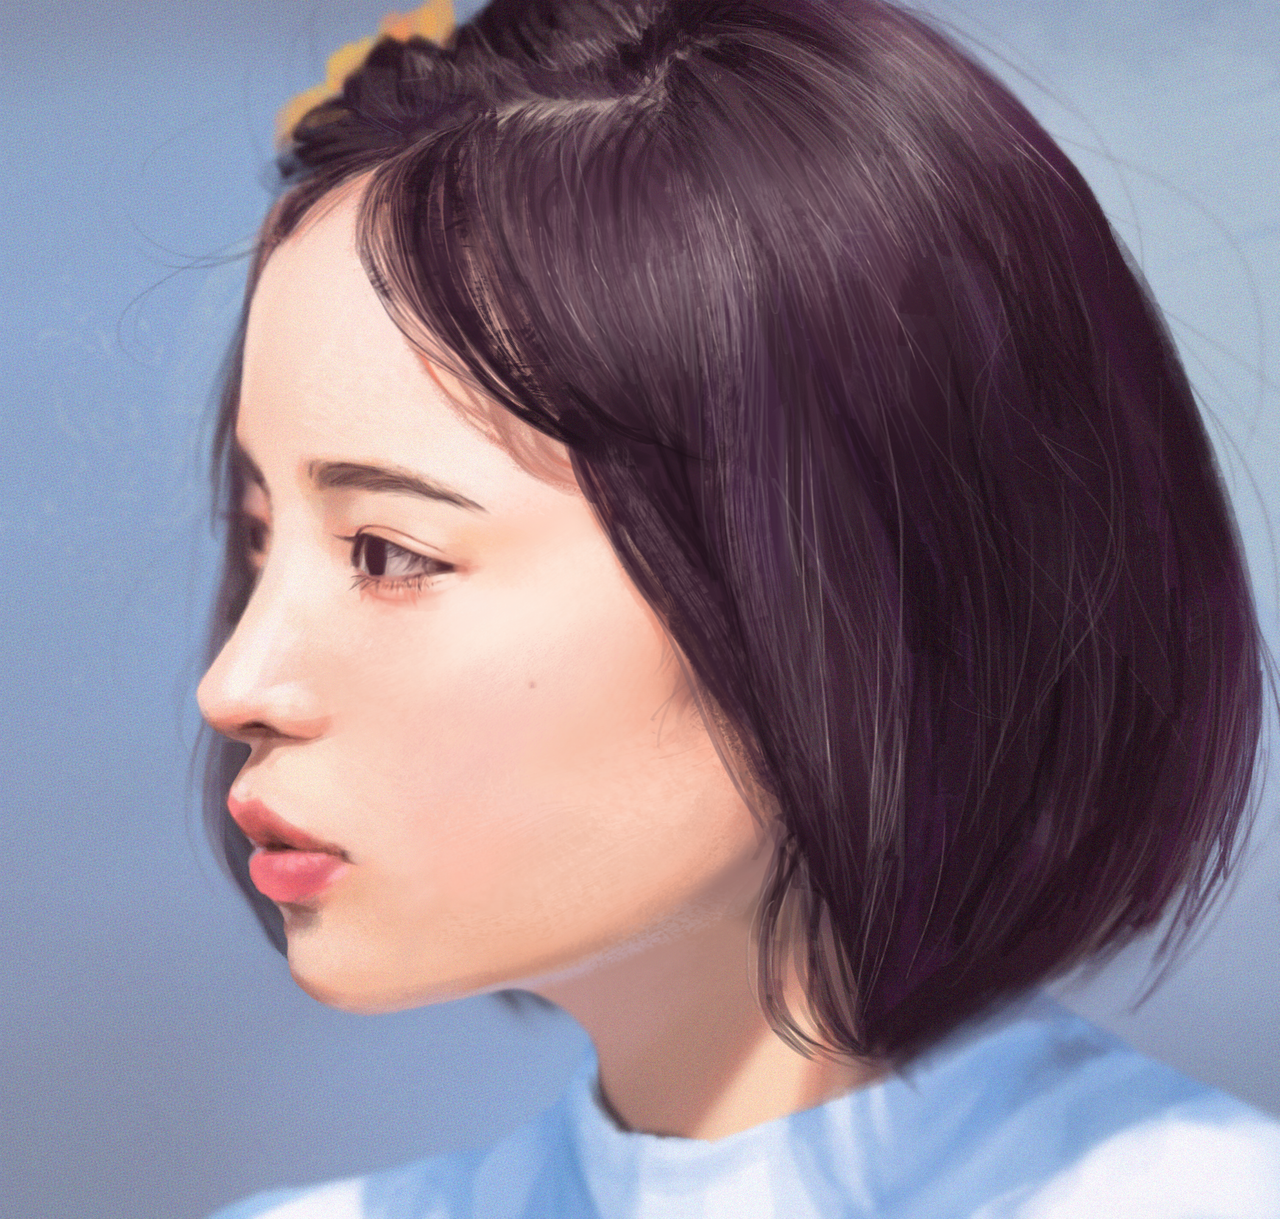 Suzu Hirose By Shengcai On Deviantart